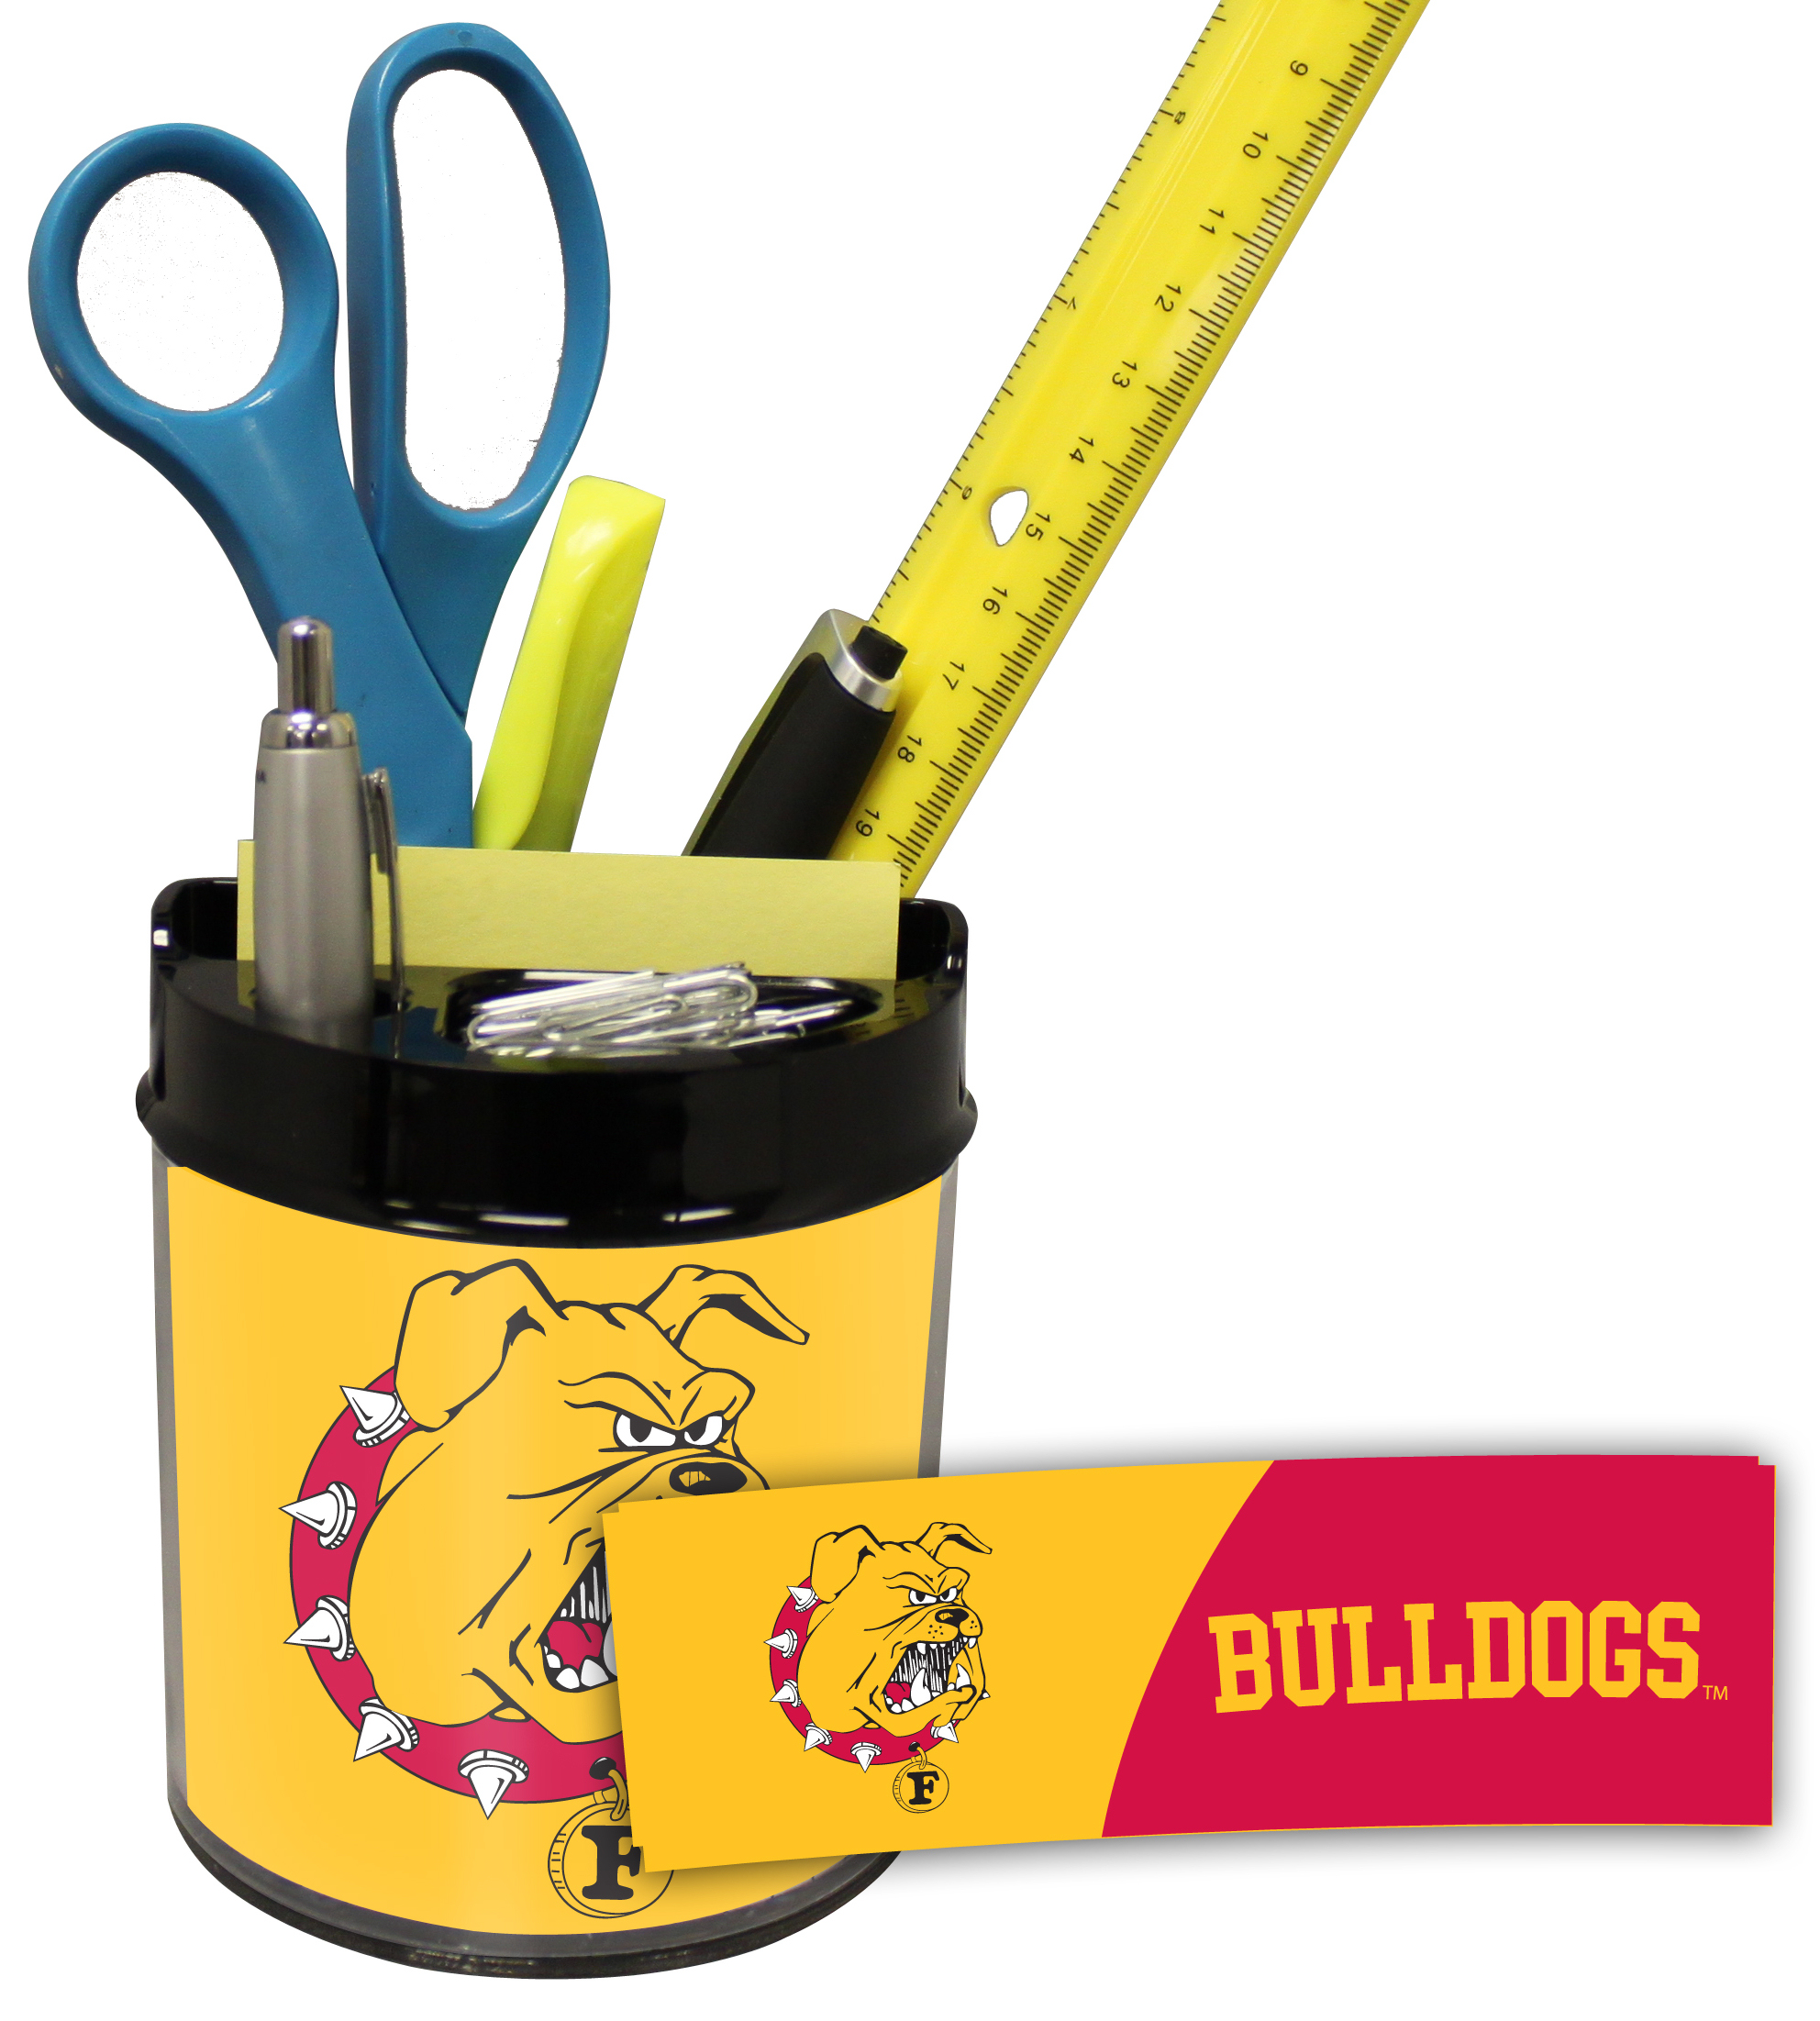 Ferris State Bullldogs Small Desk Caddy